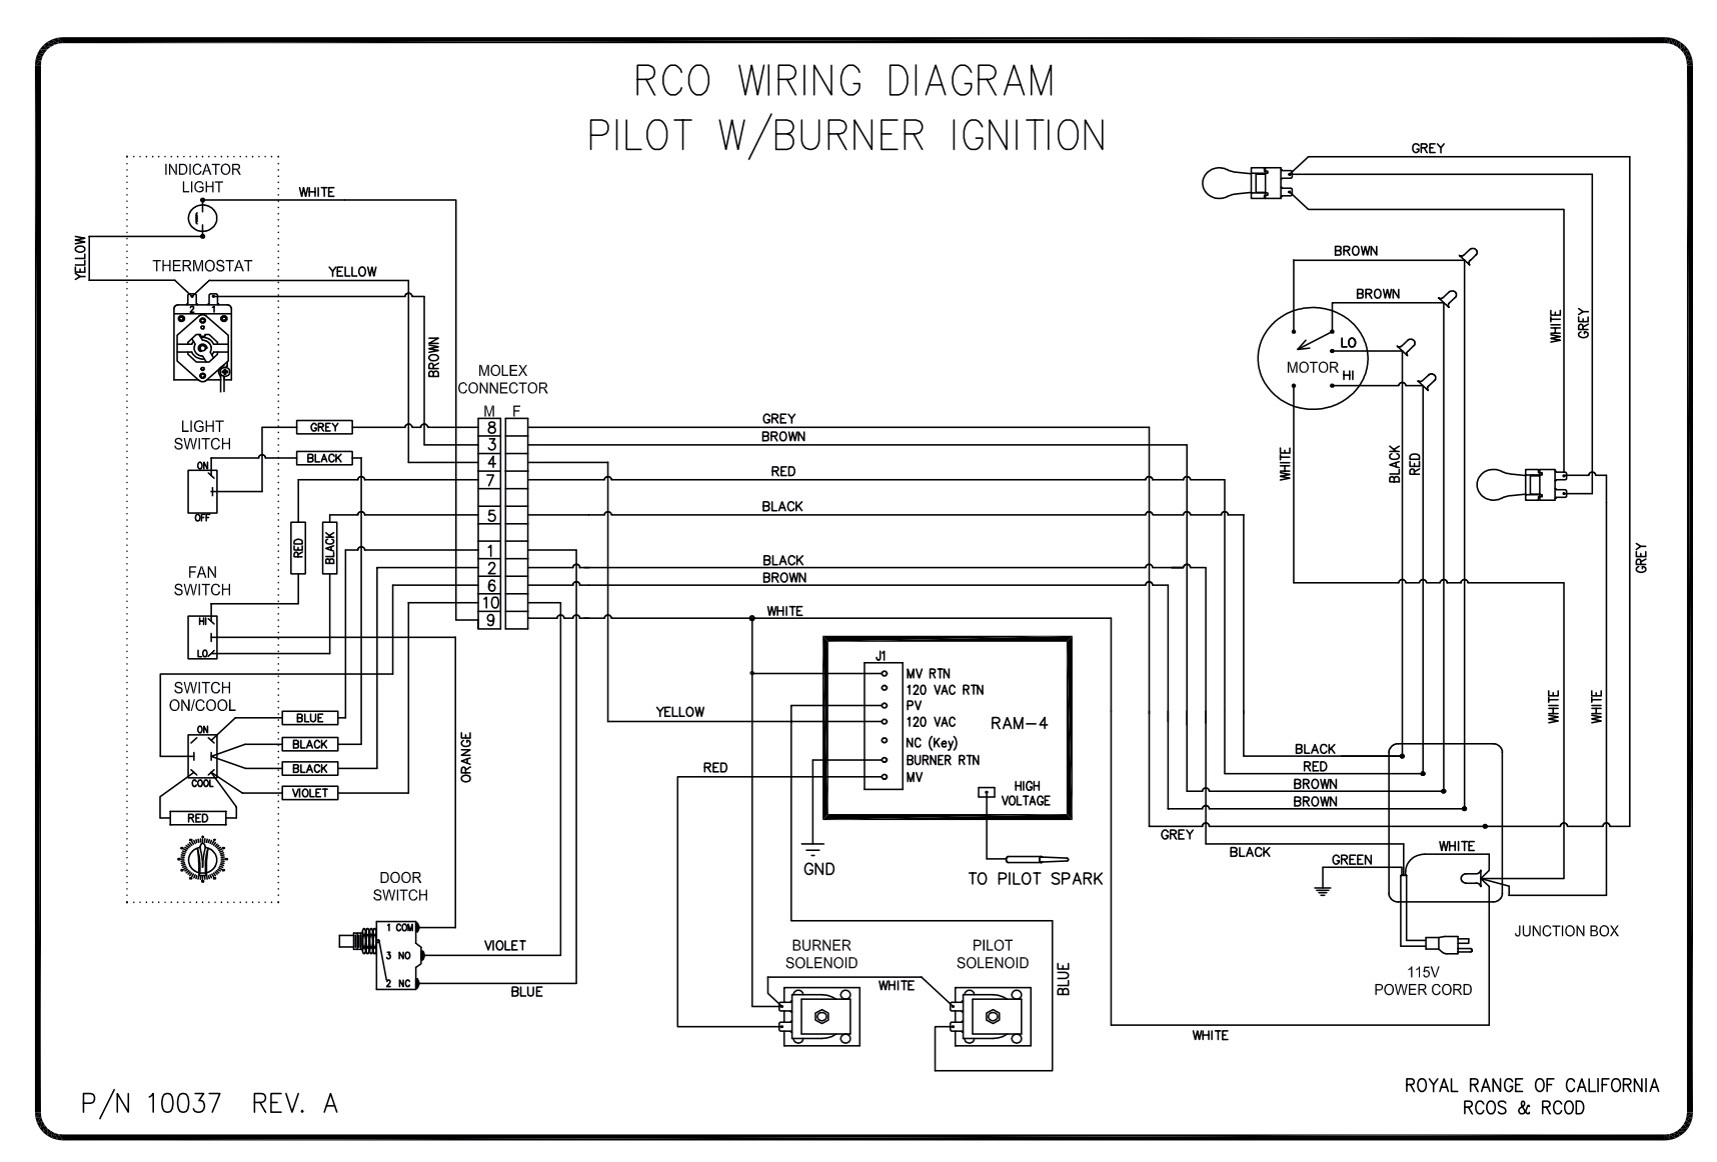 Wiring Diagrams - Royal Range of CaliforniaRoyal Range of California